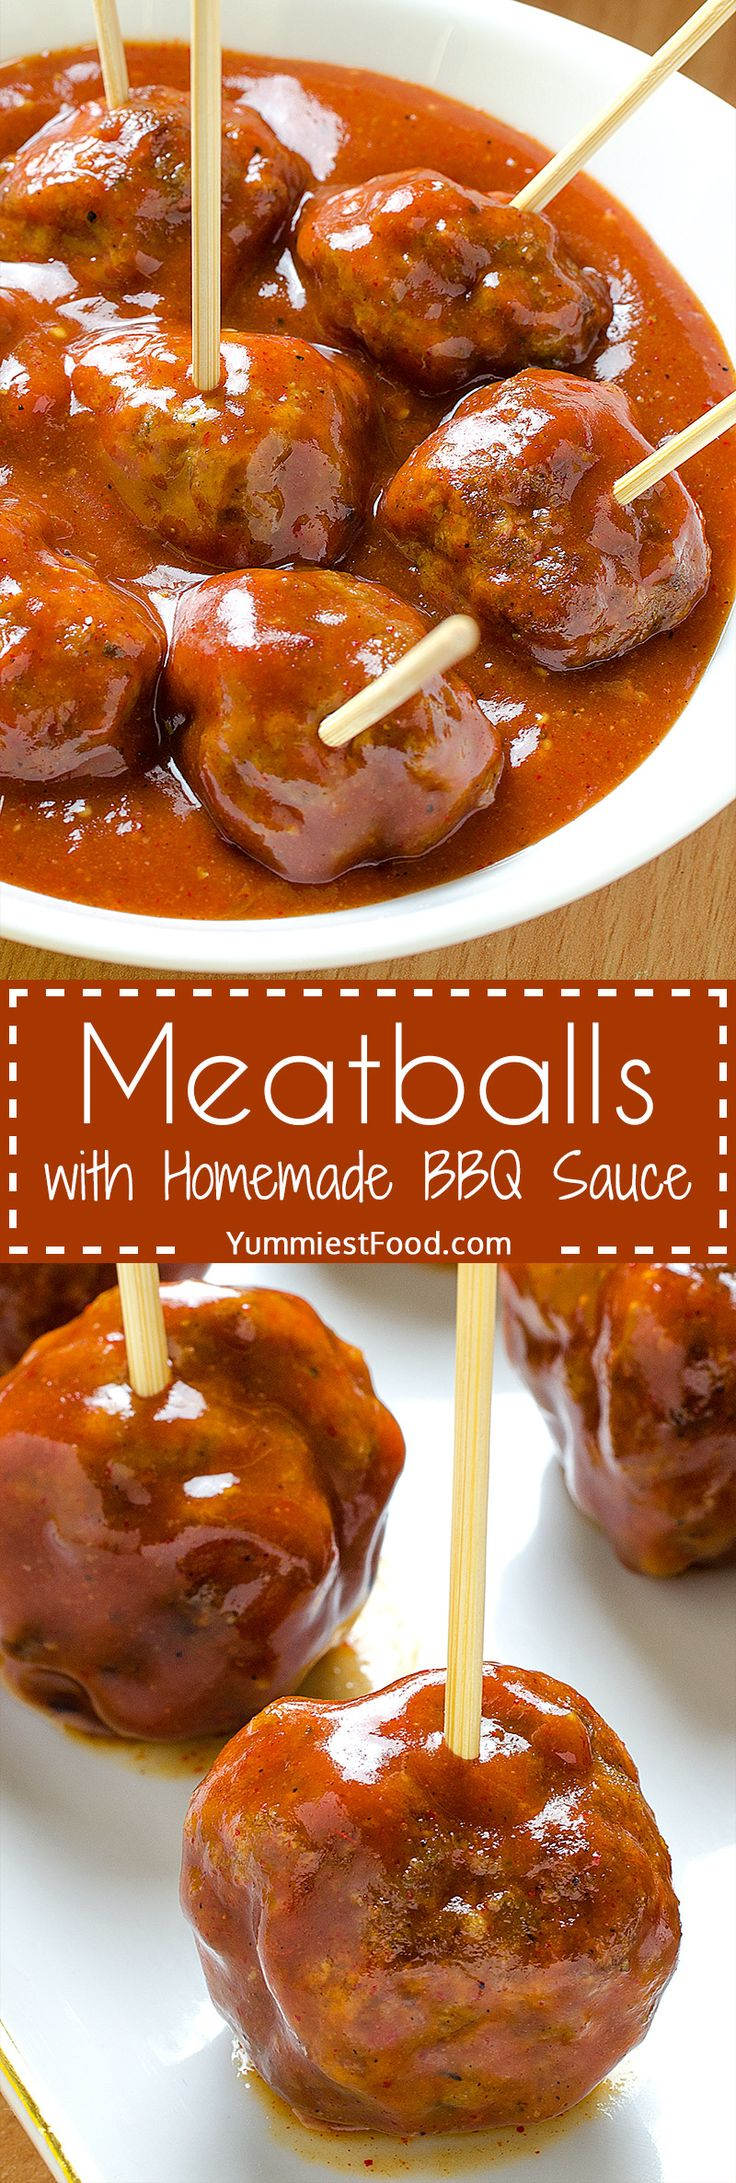 Meatballs with Homemade BBQ Sauce - such simple and easy meatball recipe! Super tasty and perfect for game day! Meatballs with Homemade BBQ Sauce - extremely delicious!